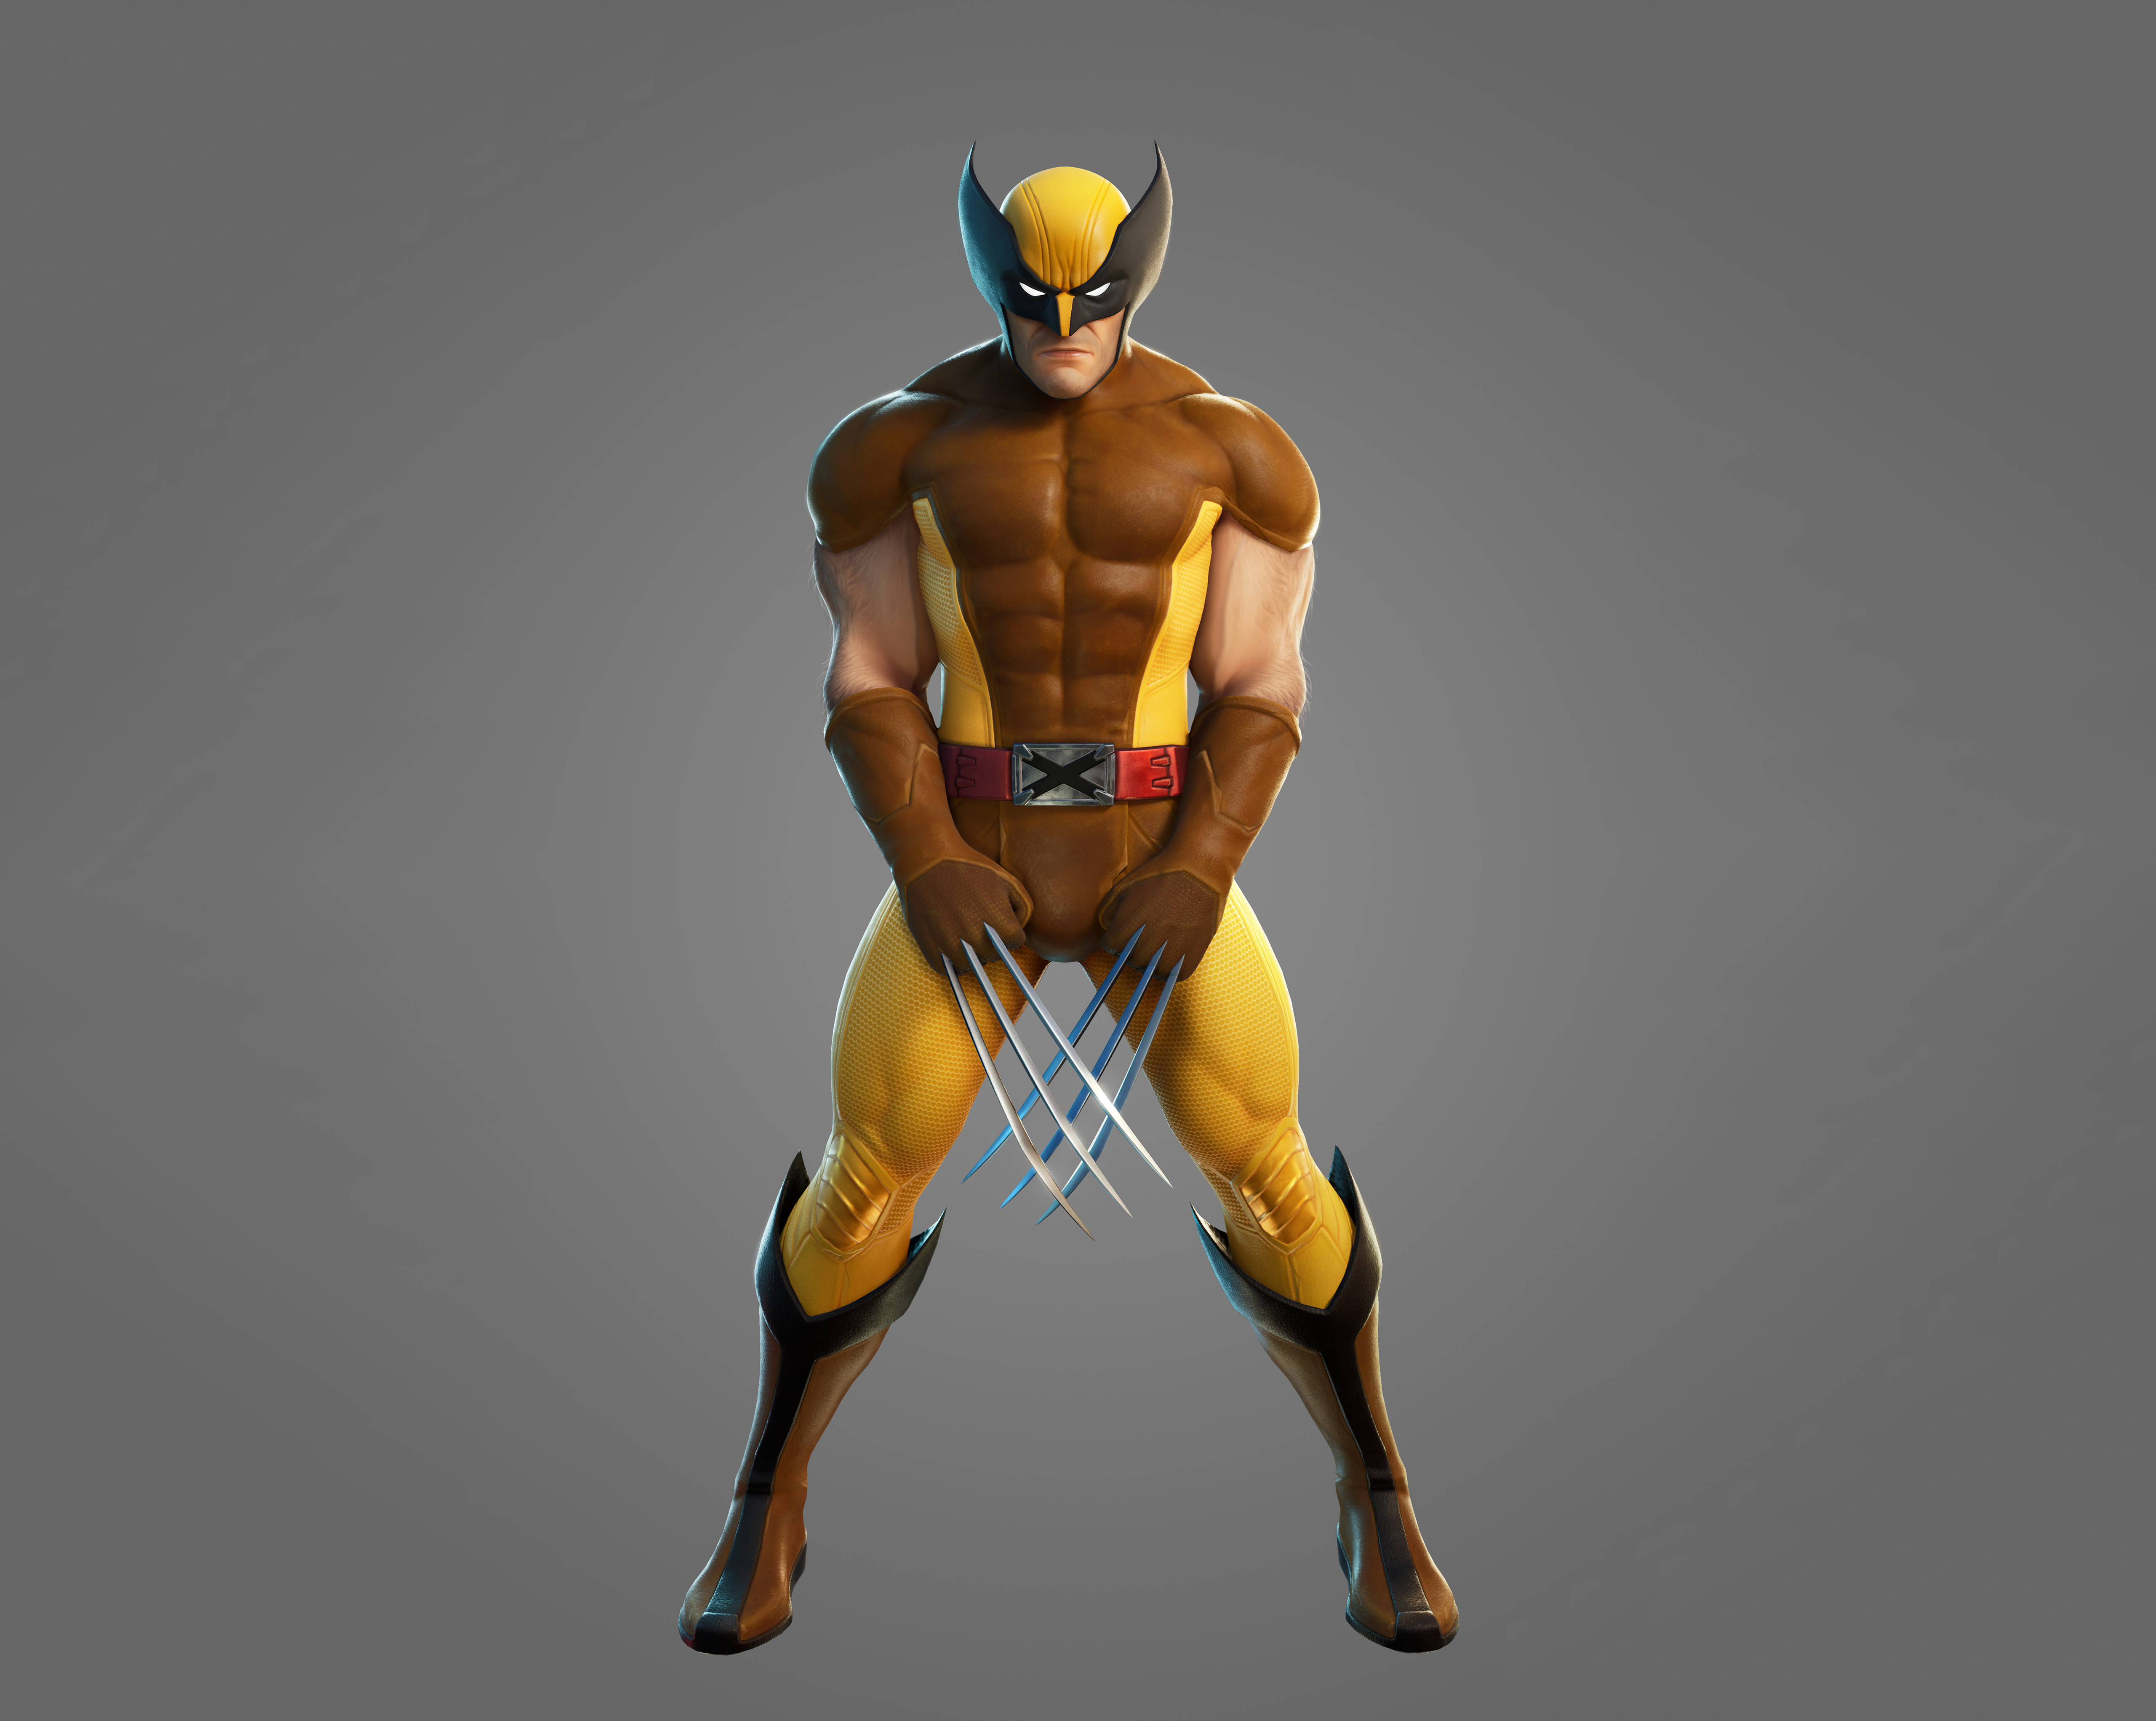 1242x2688 Wolverine Fortnite Iphone Xs Max Wallpaper Hd Games 4k Wallpapers Images Photos And Background